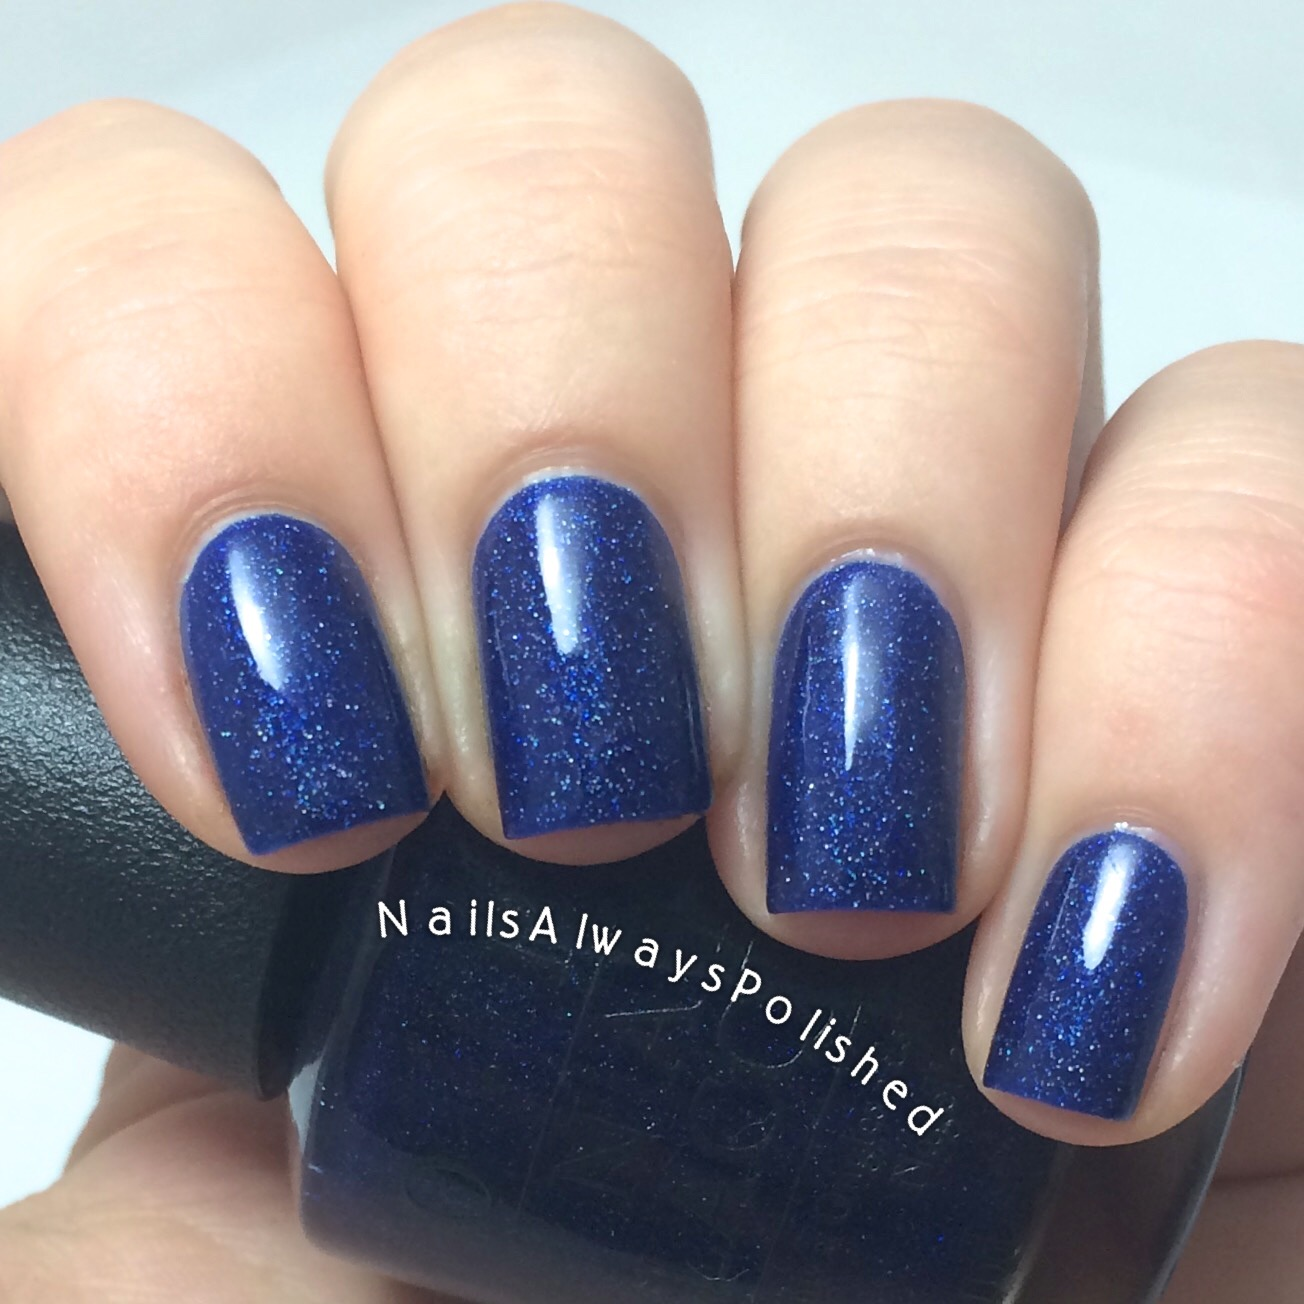 Nails Always Polished: OPI Give Me Space